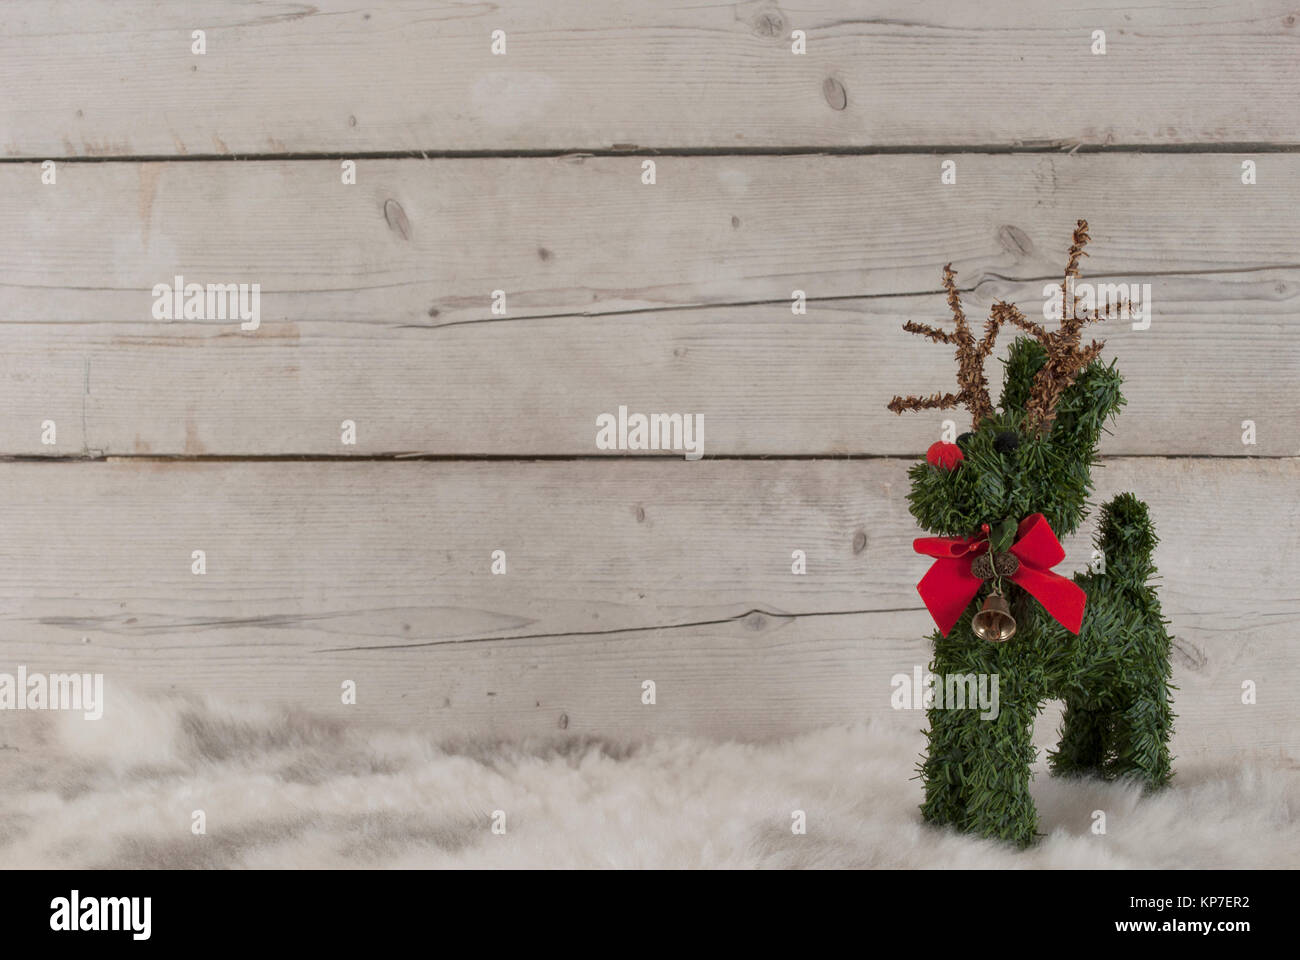 Christmas background, cute reindeer standing on sheepskin, on wooden backdrop - Stock Image